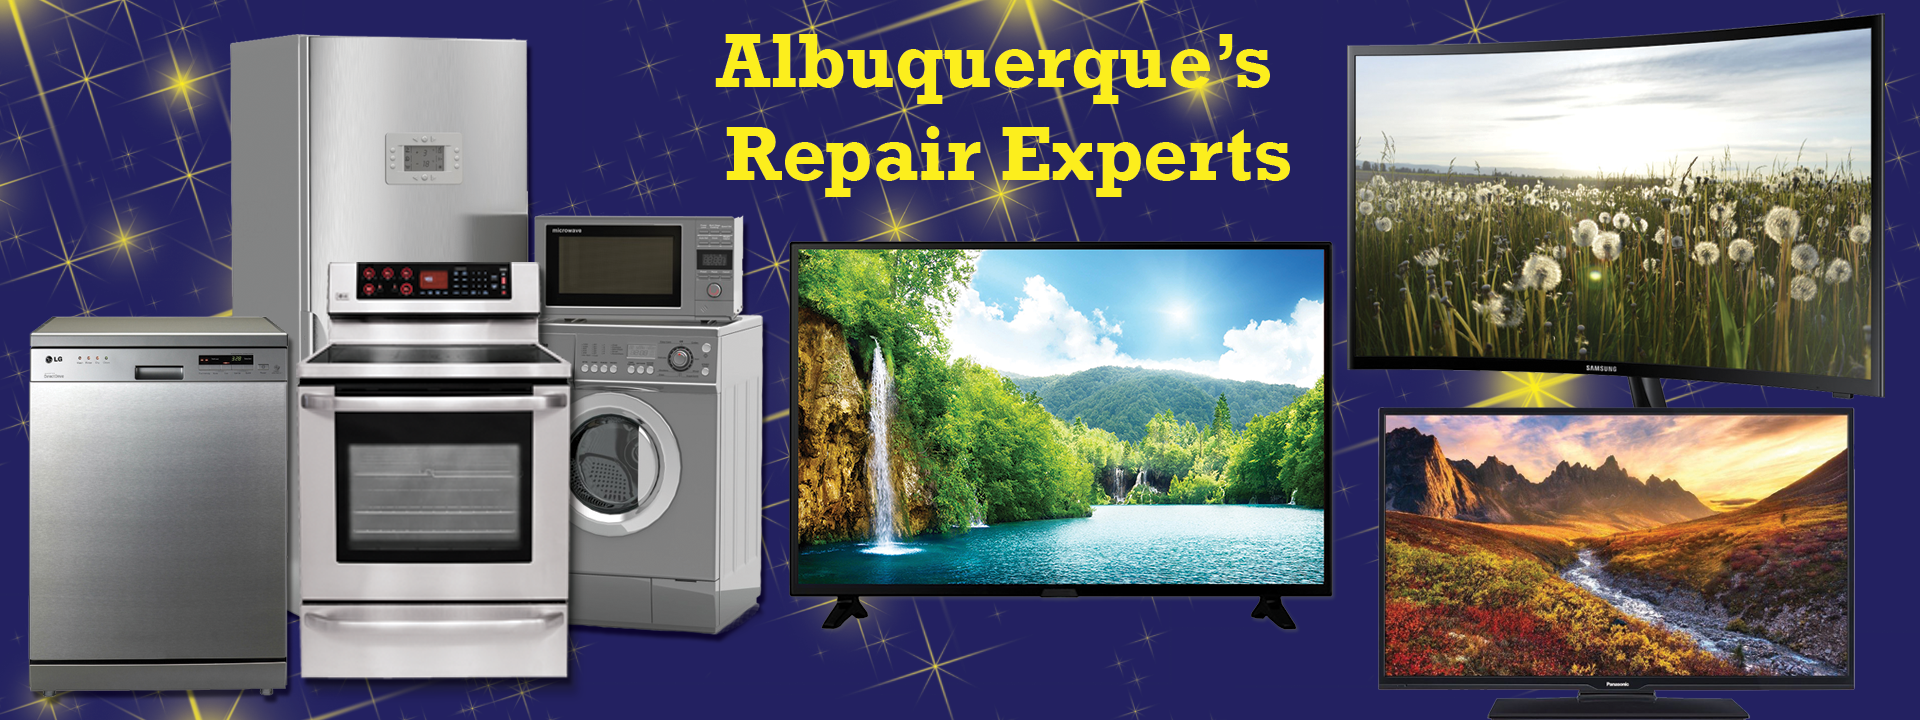 appliance and television repair in Albuquerque, NM